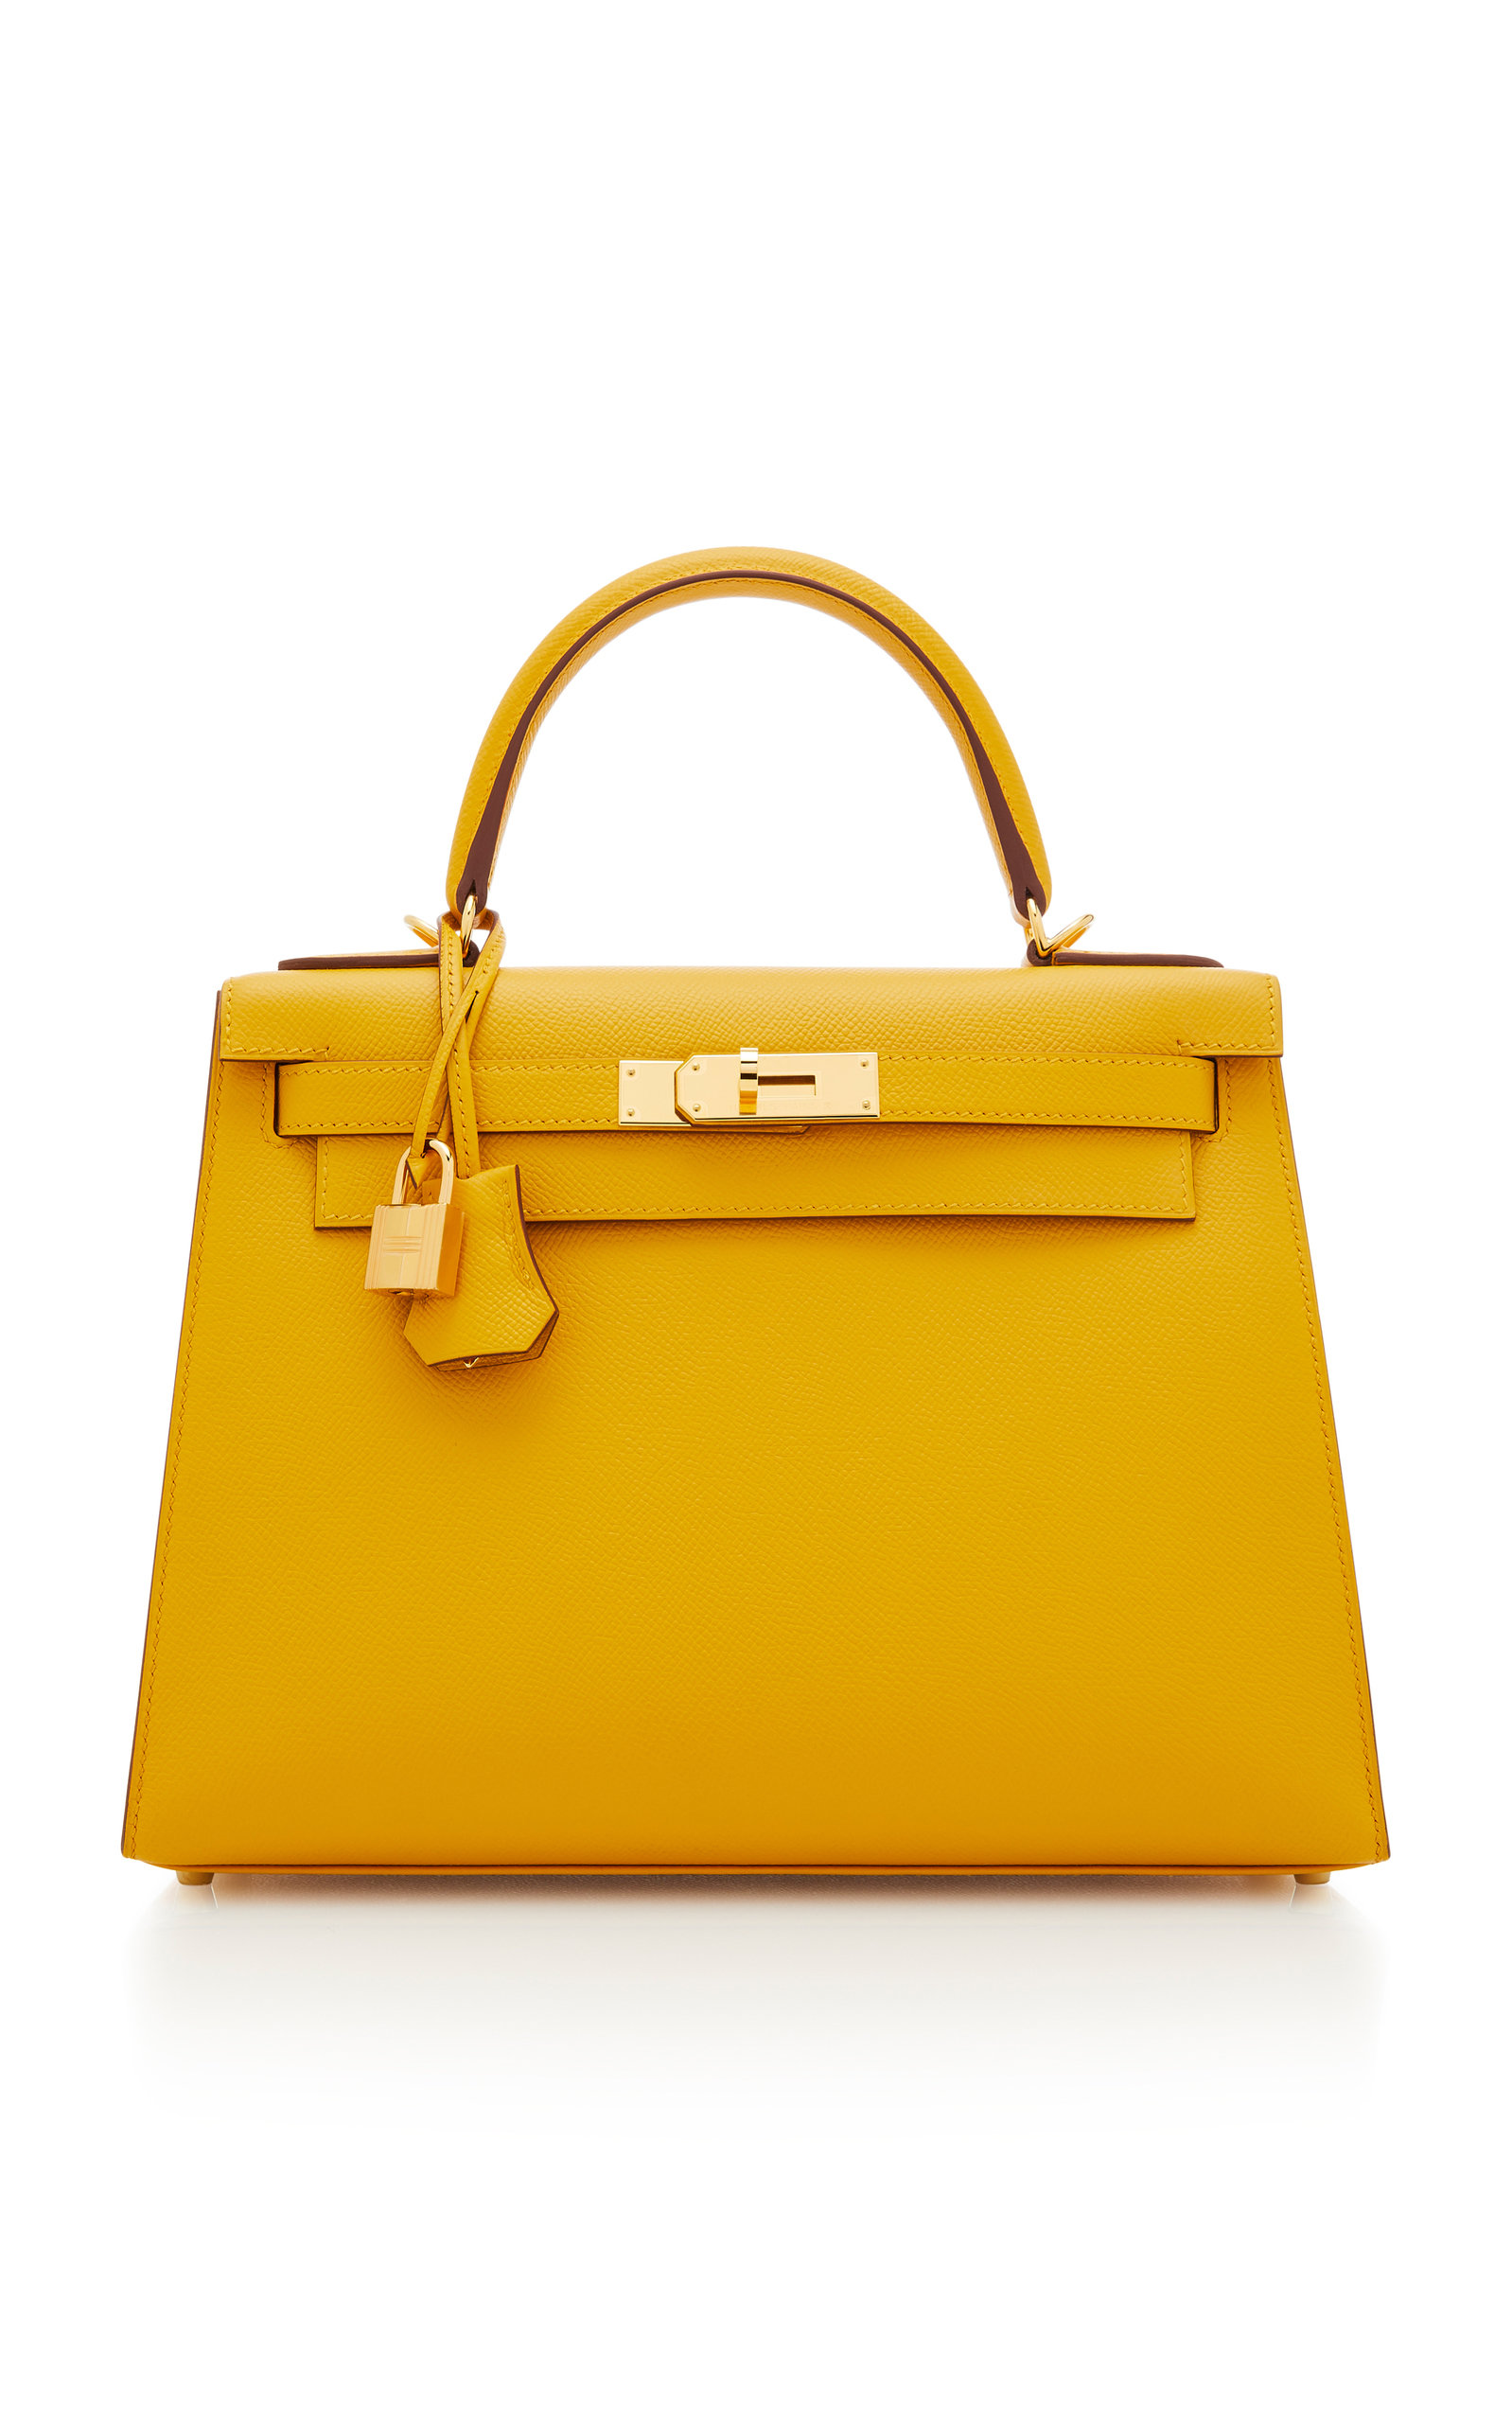 b6f9dad3823d Hermes 28cm Jaune Ambre Epsom Leather Sellier Kelly by Hermès ...